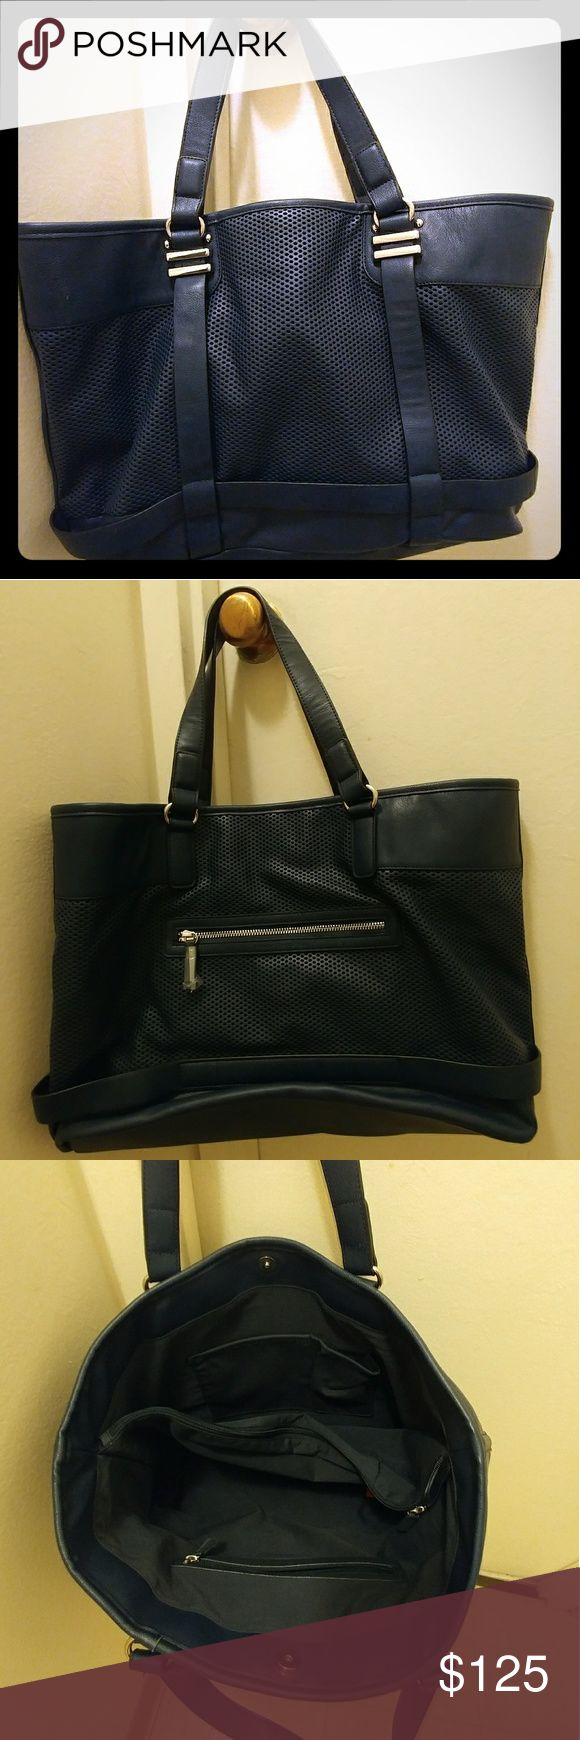 French Connection Dark Navy Shoulder Bag/Purse Never been used and is brand new. It doesn't have tags, however. French Connection Bags Shoulder Bags